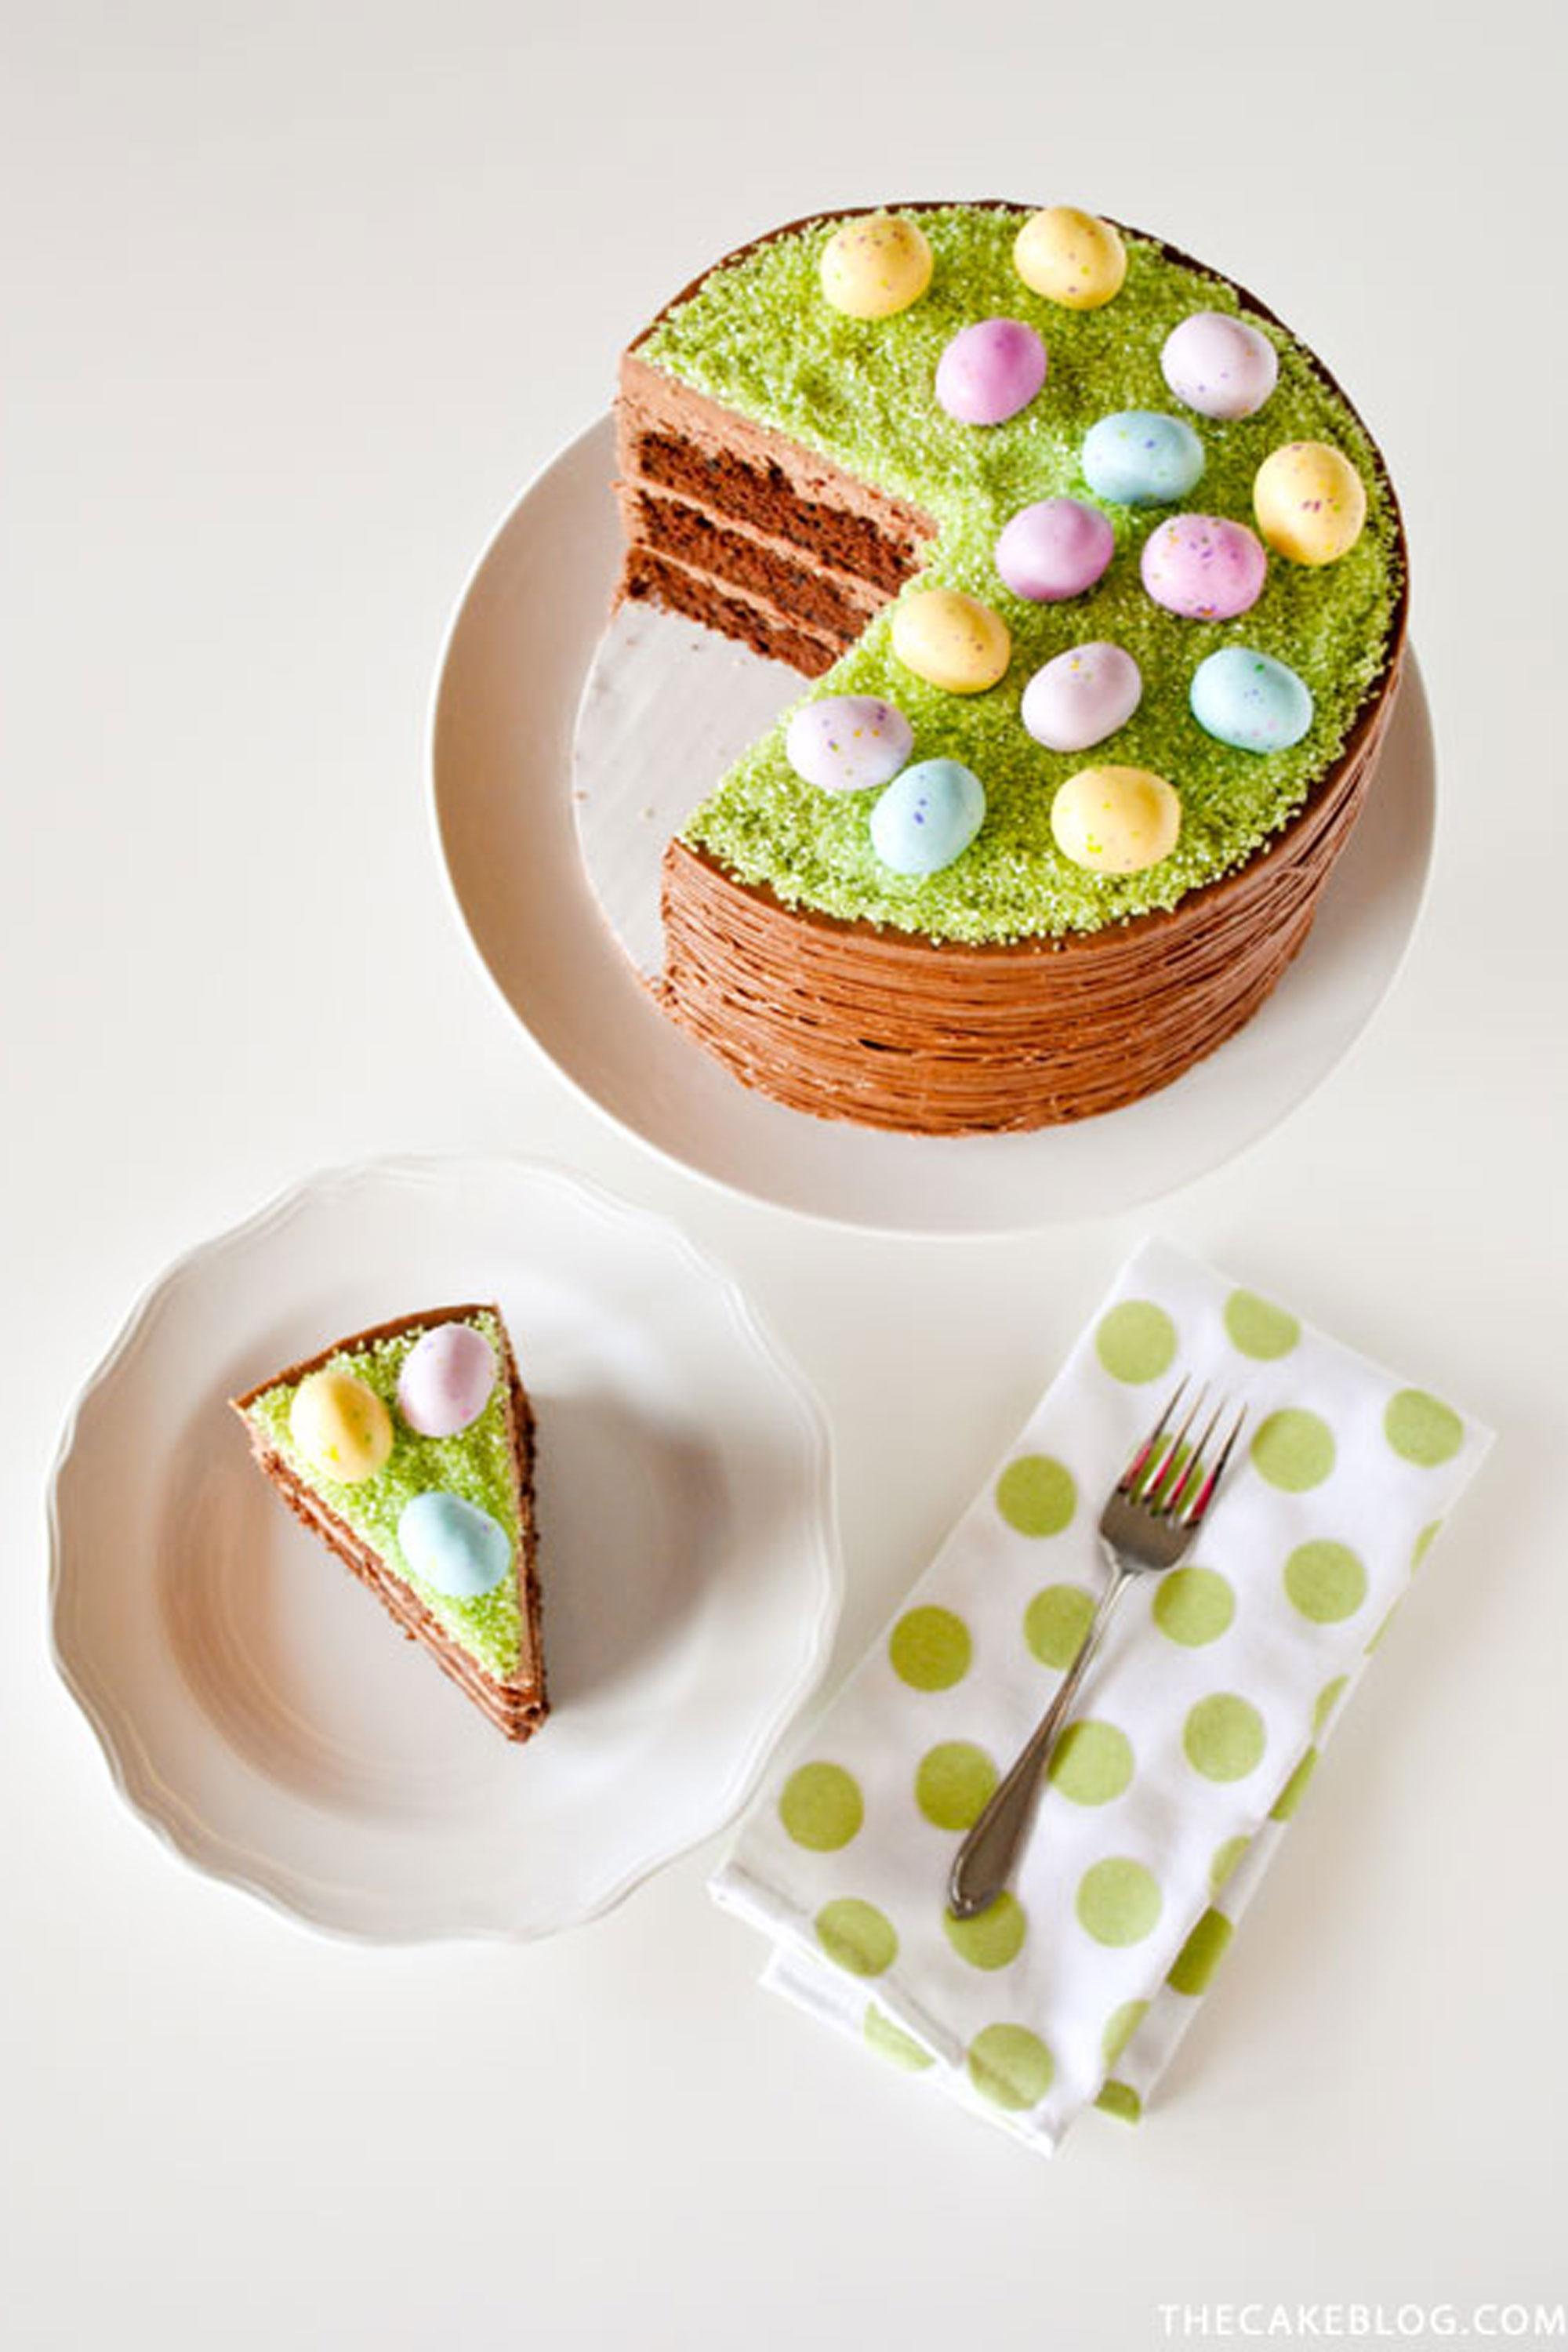 73 Easy Easter Cakes and Desserts Recipes - Best Ideas for Easter ...